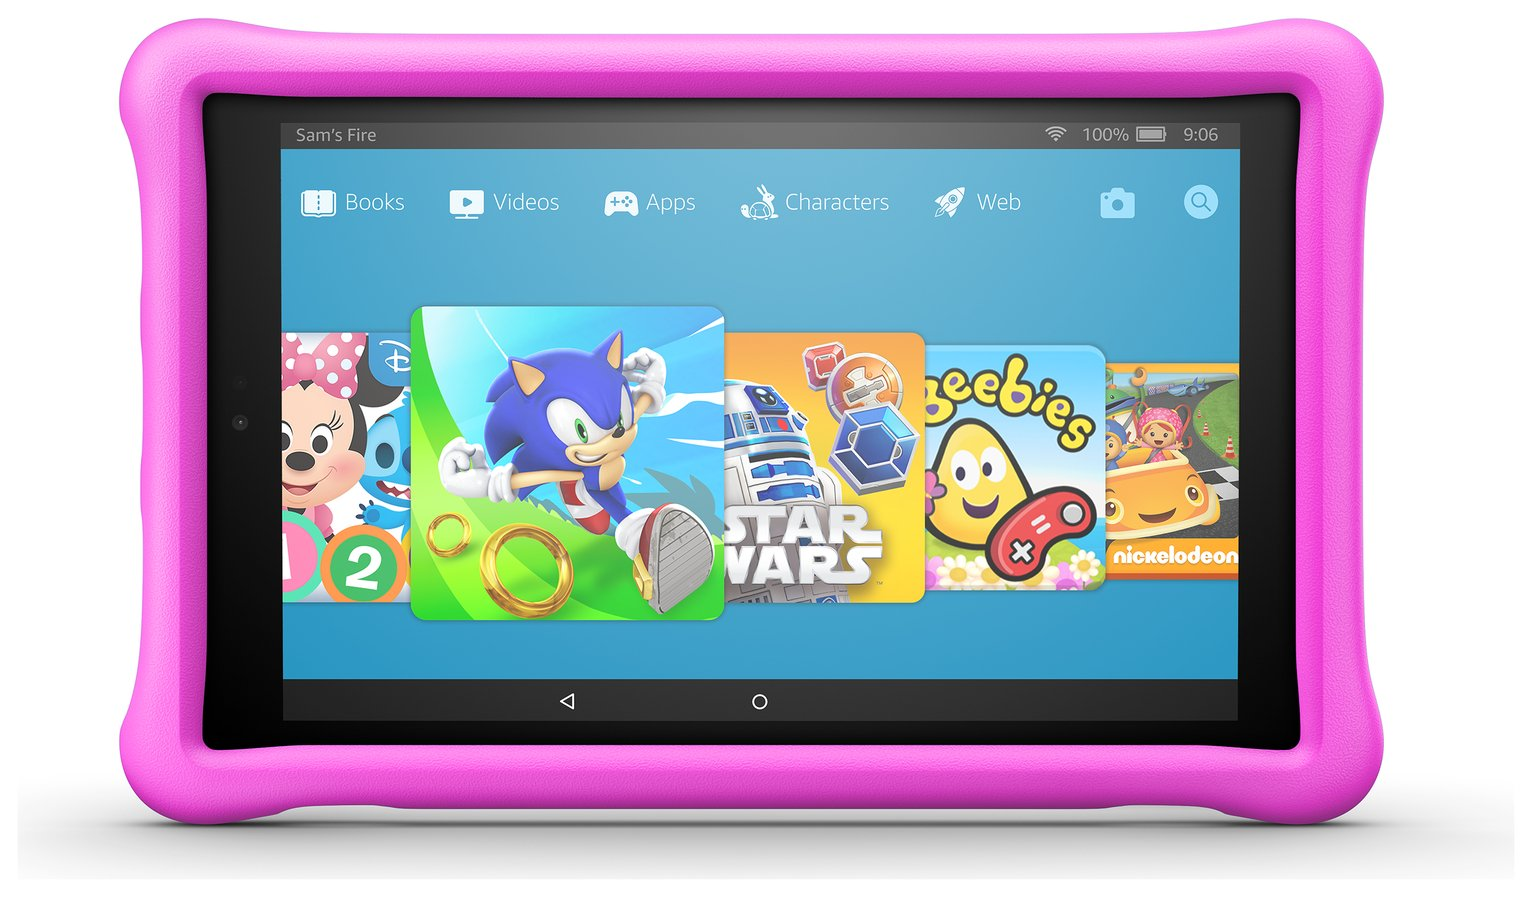 Amazon Fire HD 10 10.1 Inch 32GB Kids Edition Tablet - Pink from Amazon